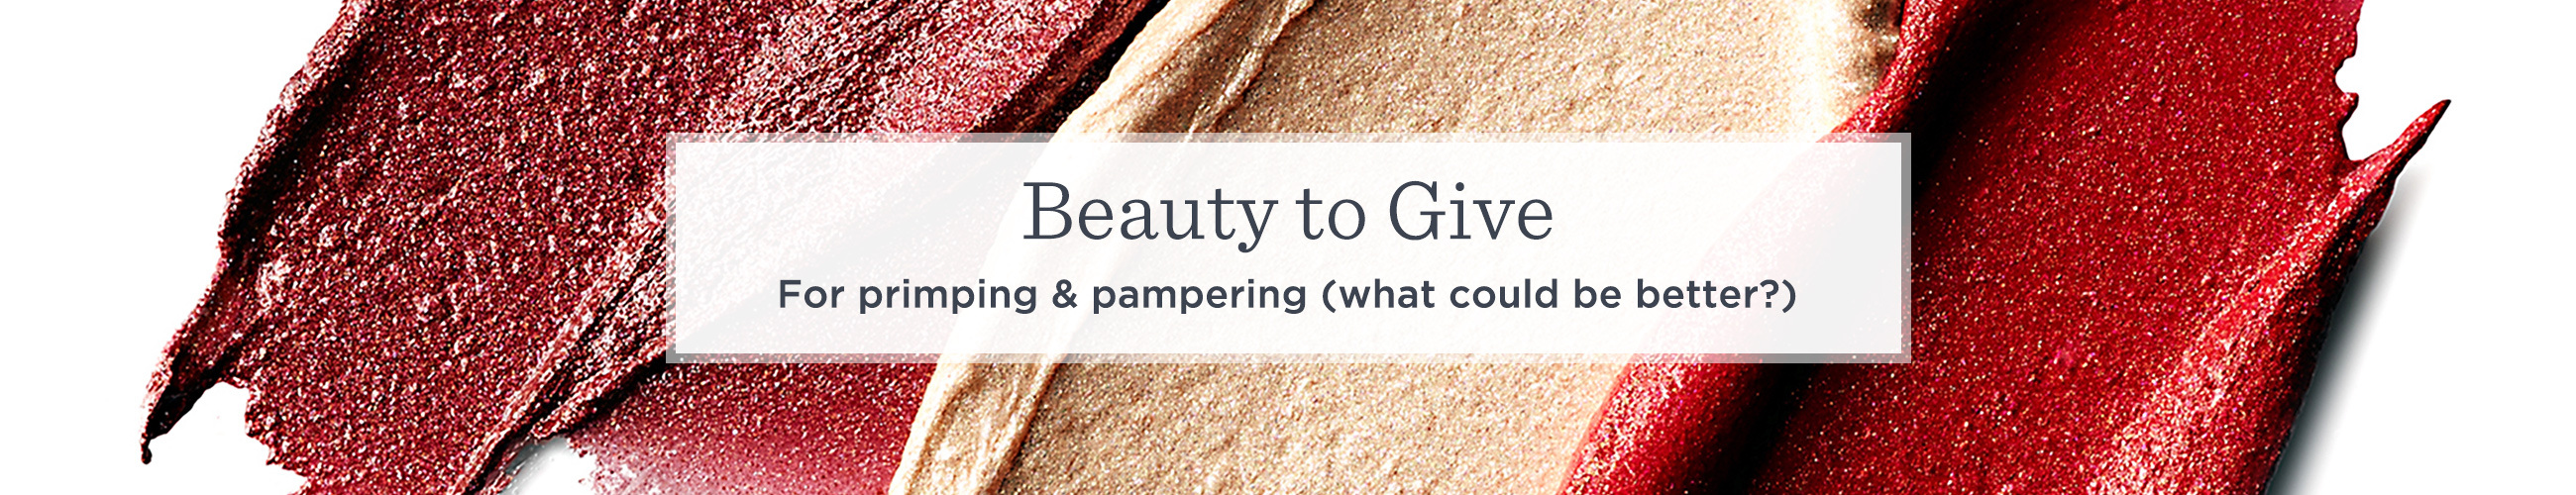 Beauty to Give  For primping & pampering (what could be better?)